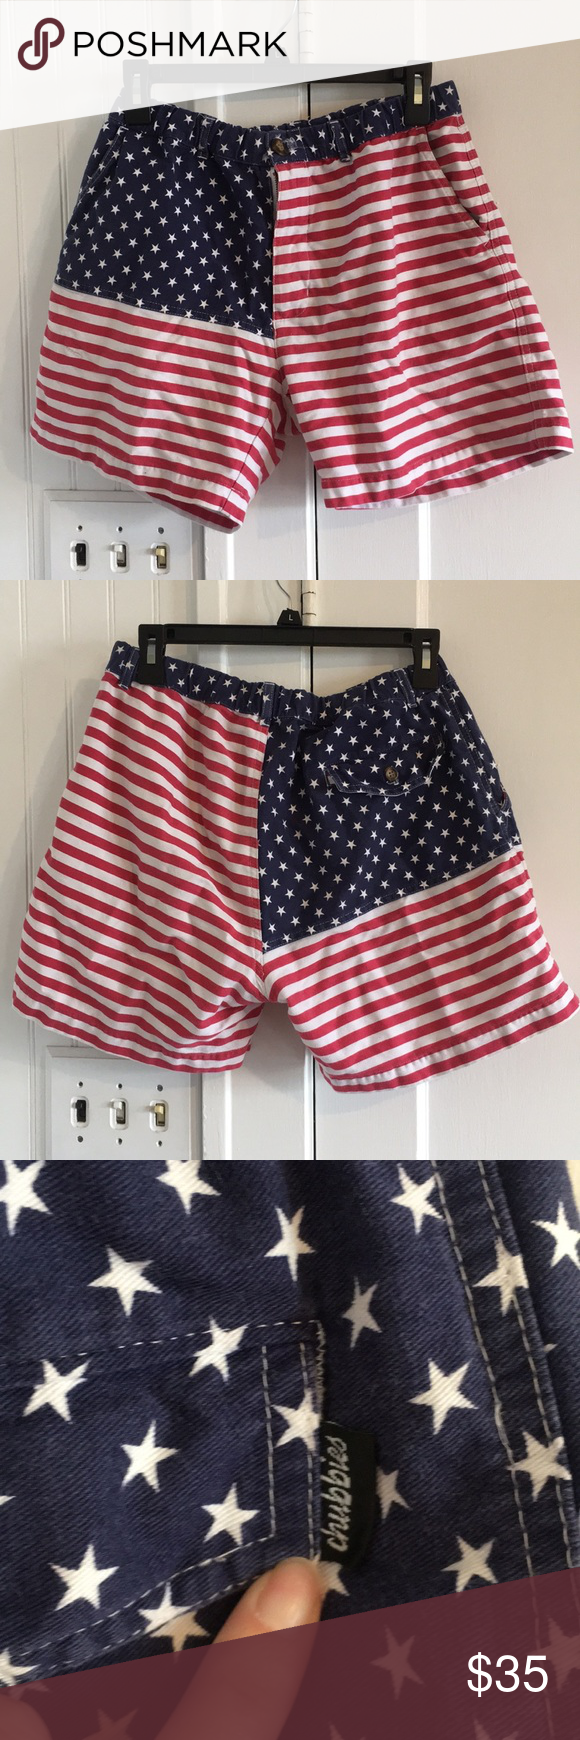 American Flag Chubbies Shorts Clothes Design Chubbies Shorts Winter Outfits